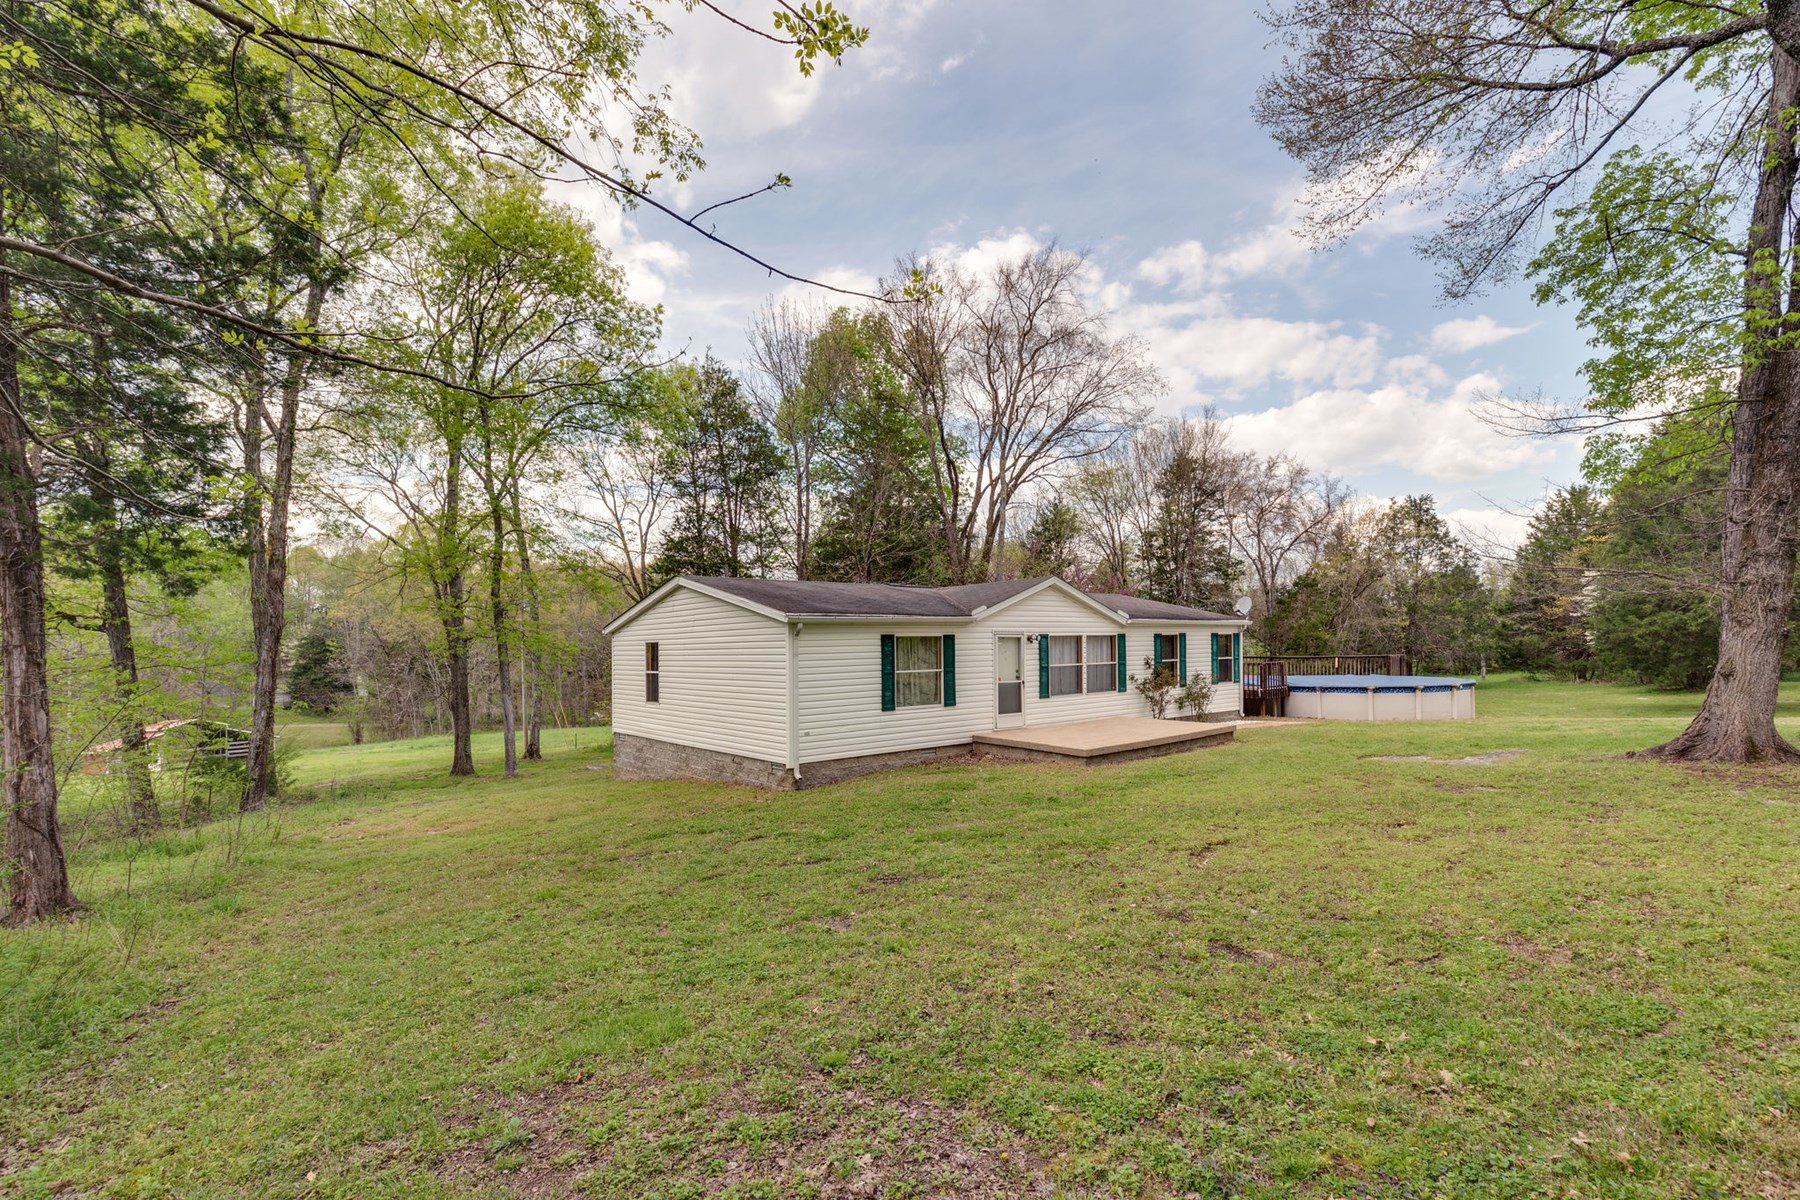 Manufactured Home for Sale on Acreage in Columbia, Tennessee